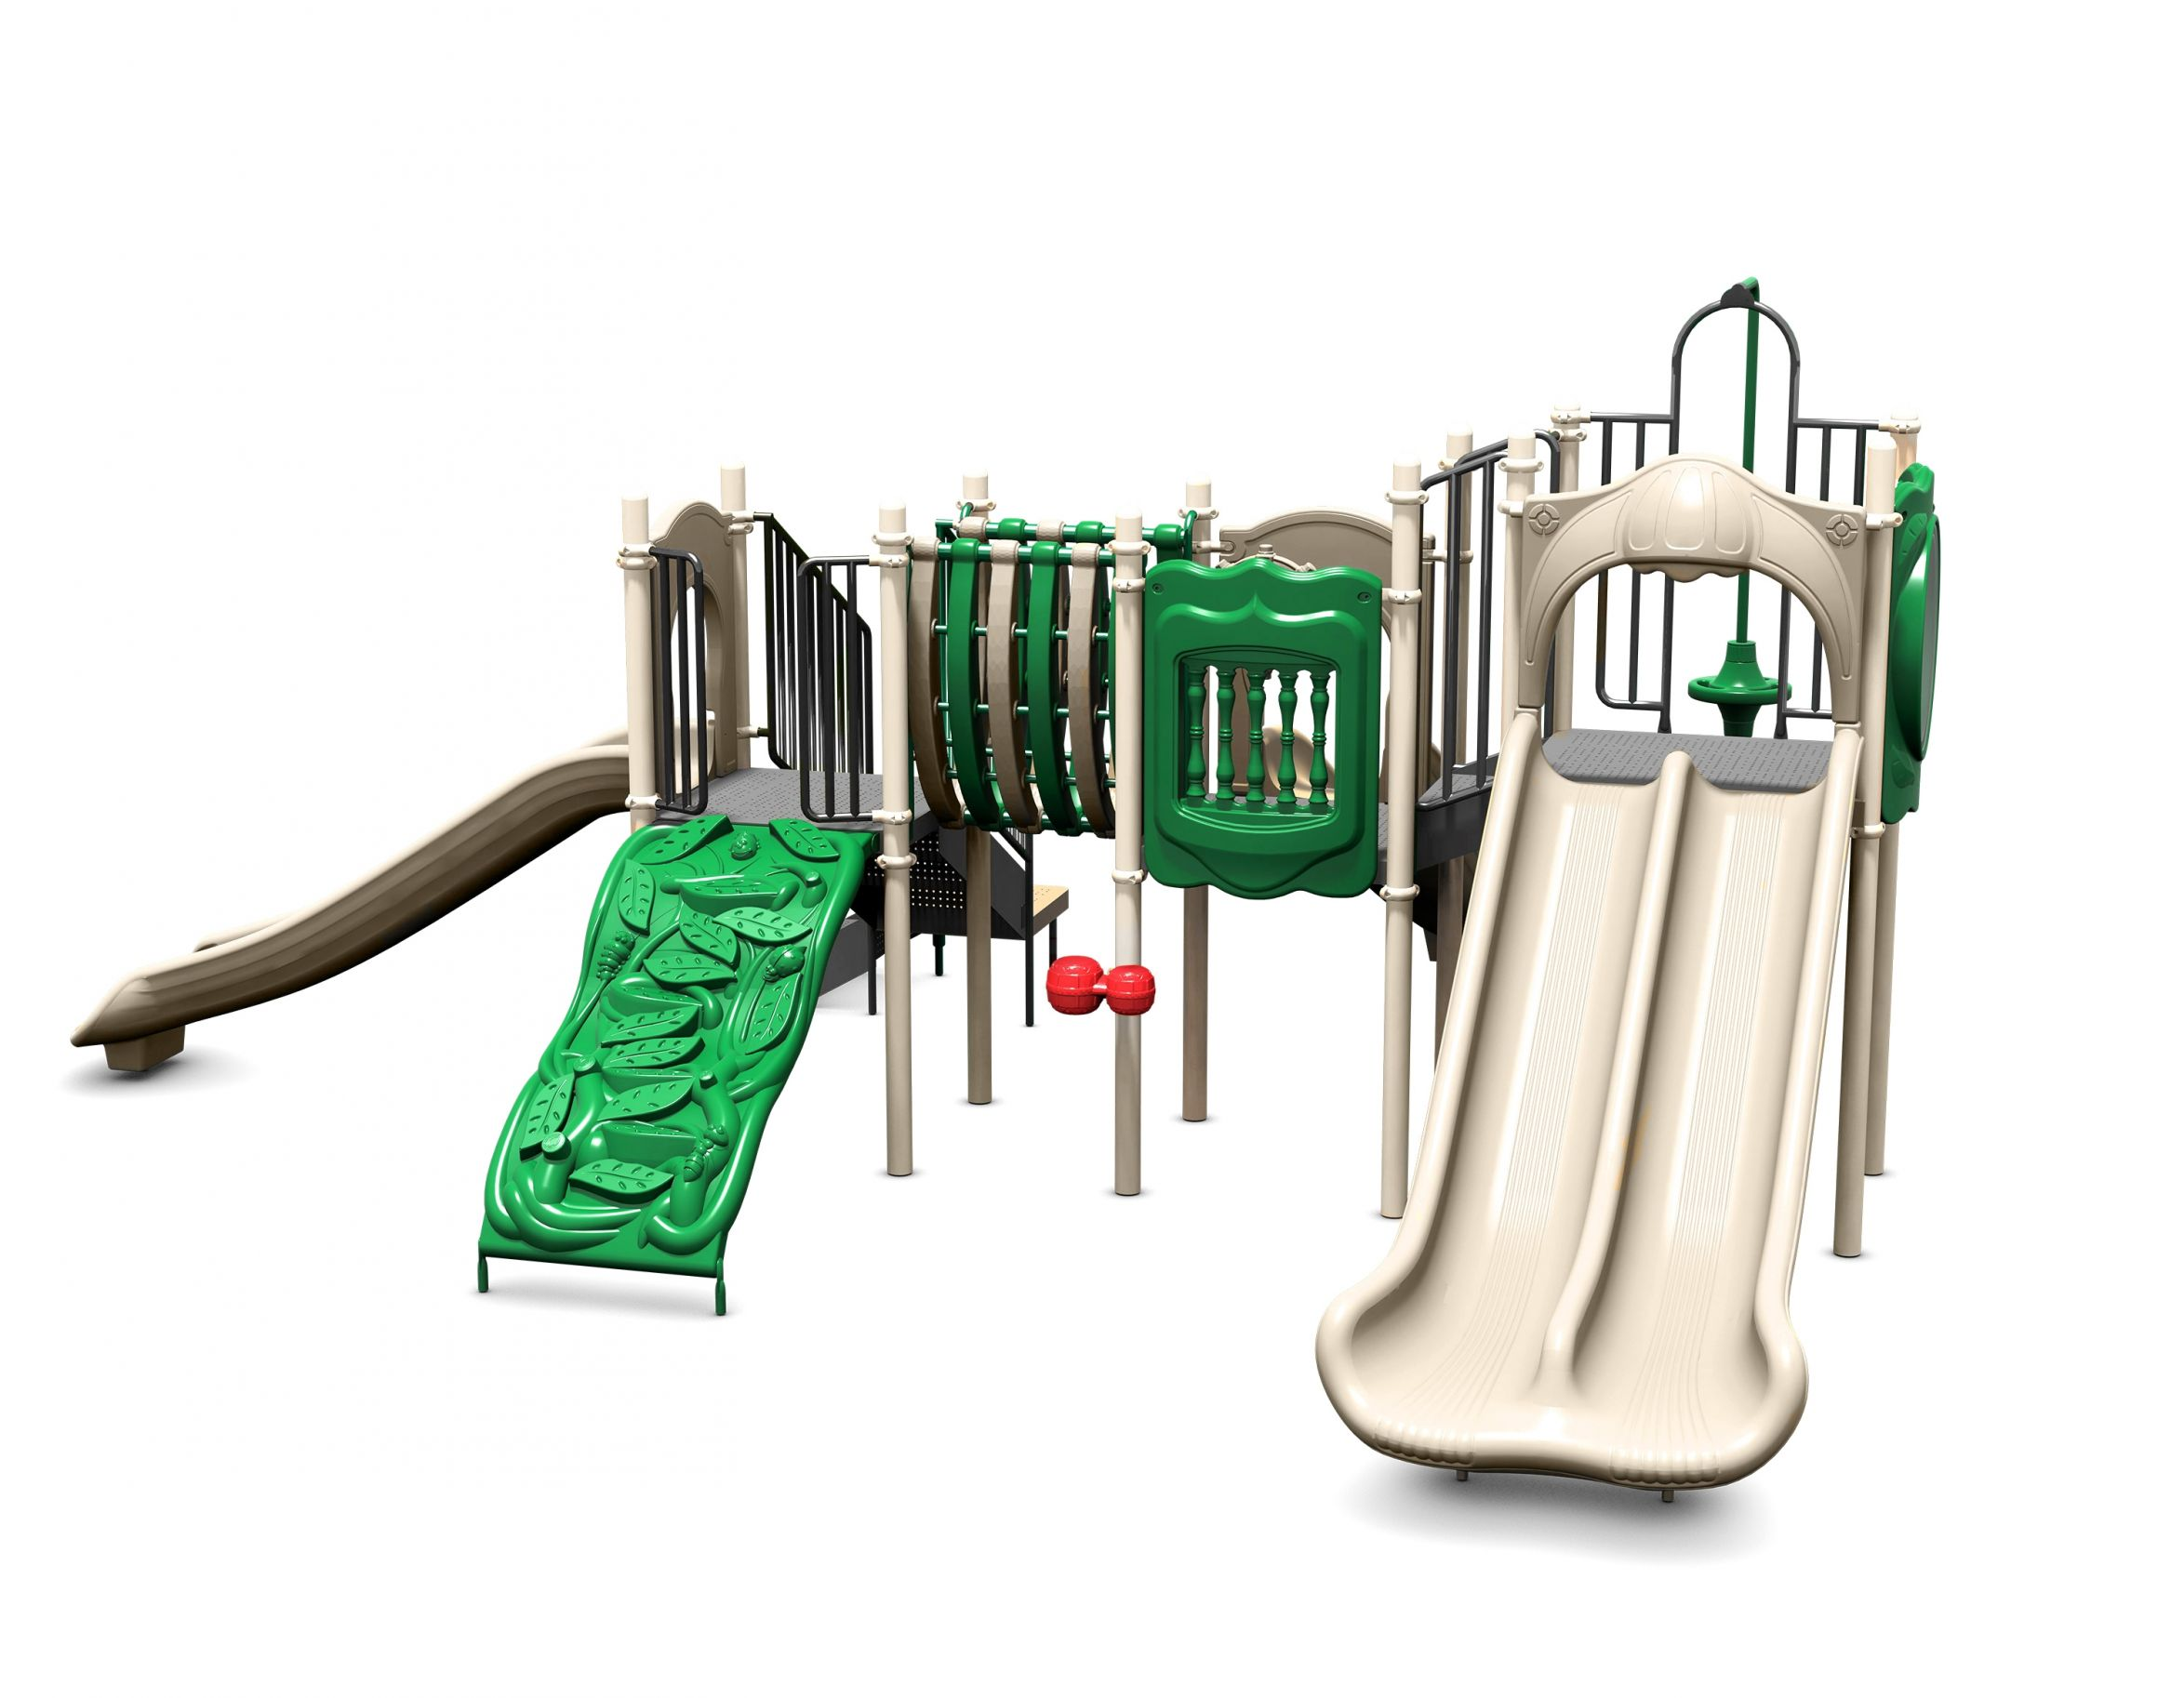 Are Your Kids Begging for a Playground?